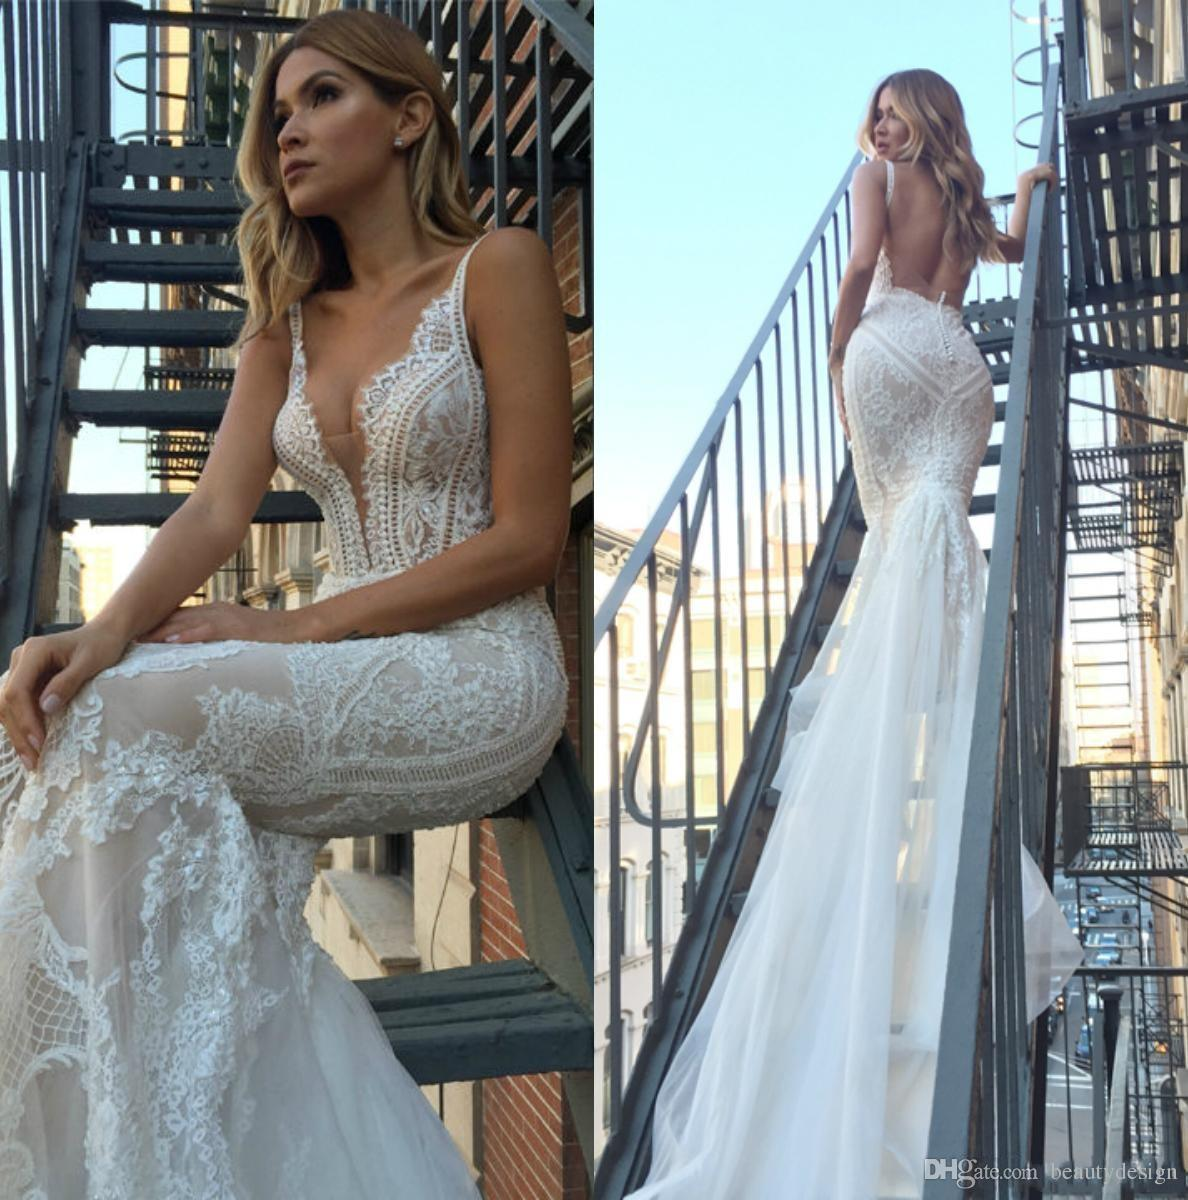 Pallas Couture Mermaid Wedding Dress 2020 Sexy Plus Size Backless Vestidos De Novia Lace Bridal Gowns For Beach Wedding